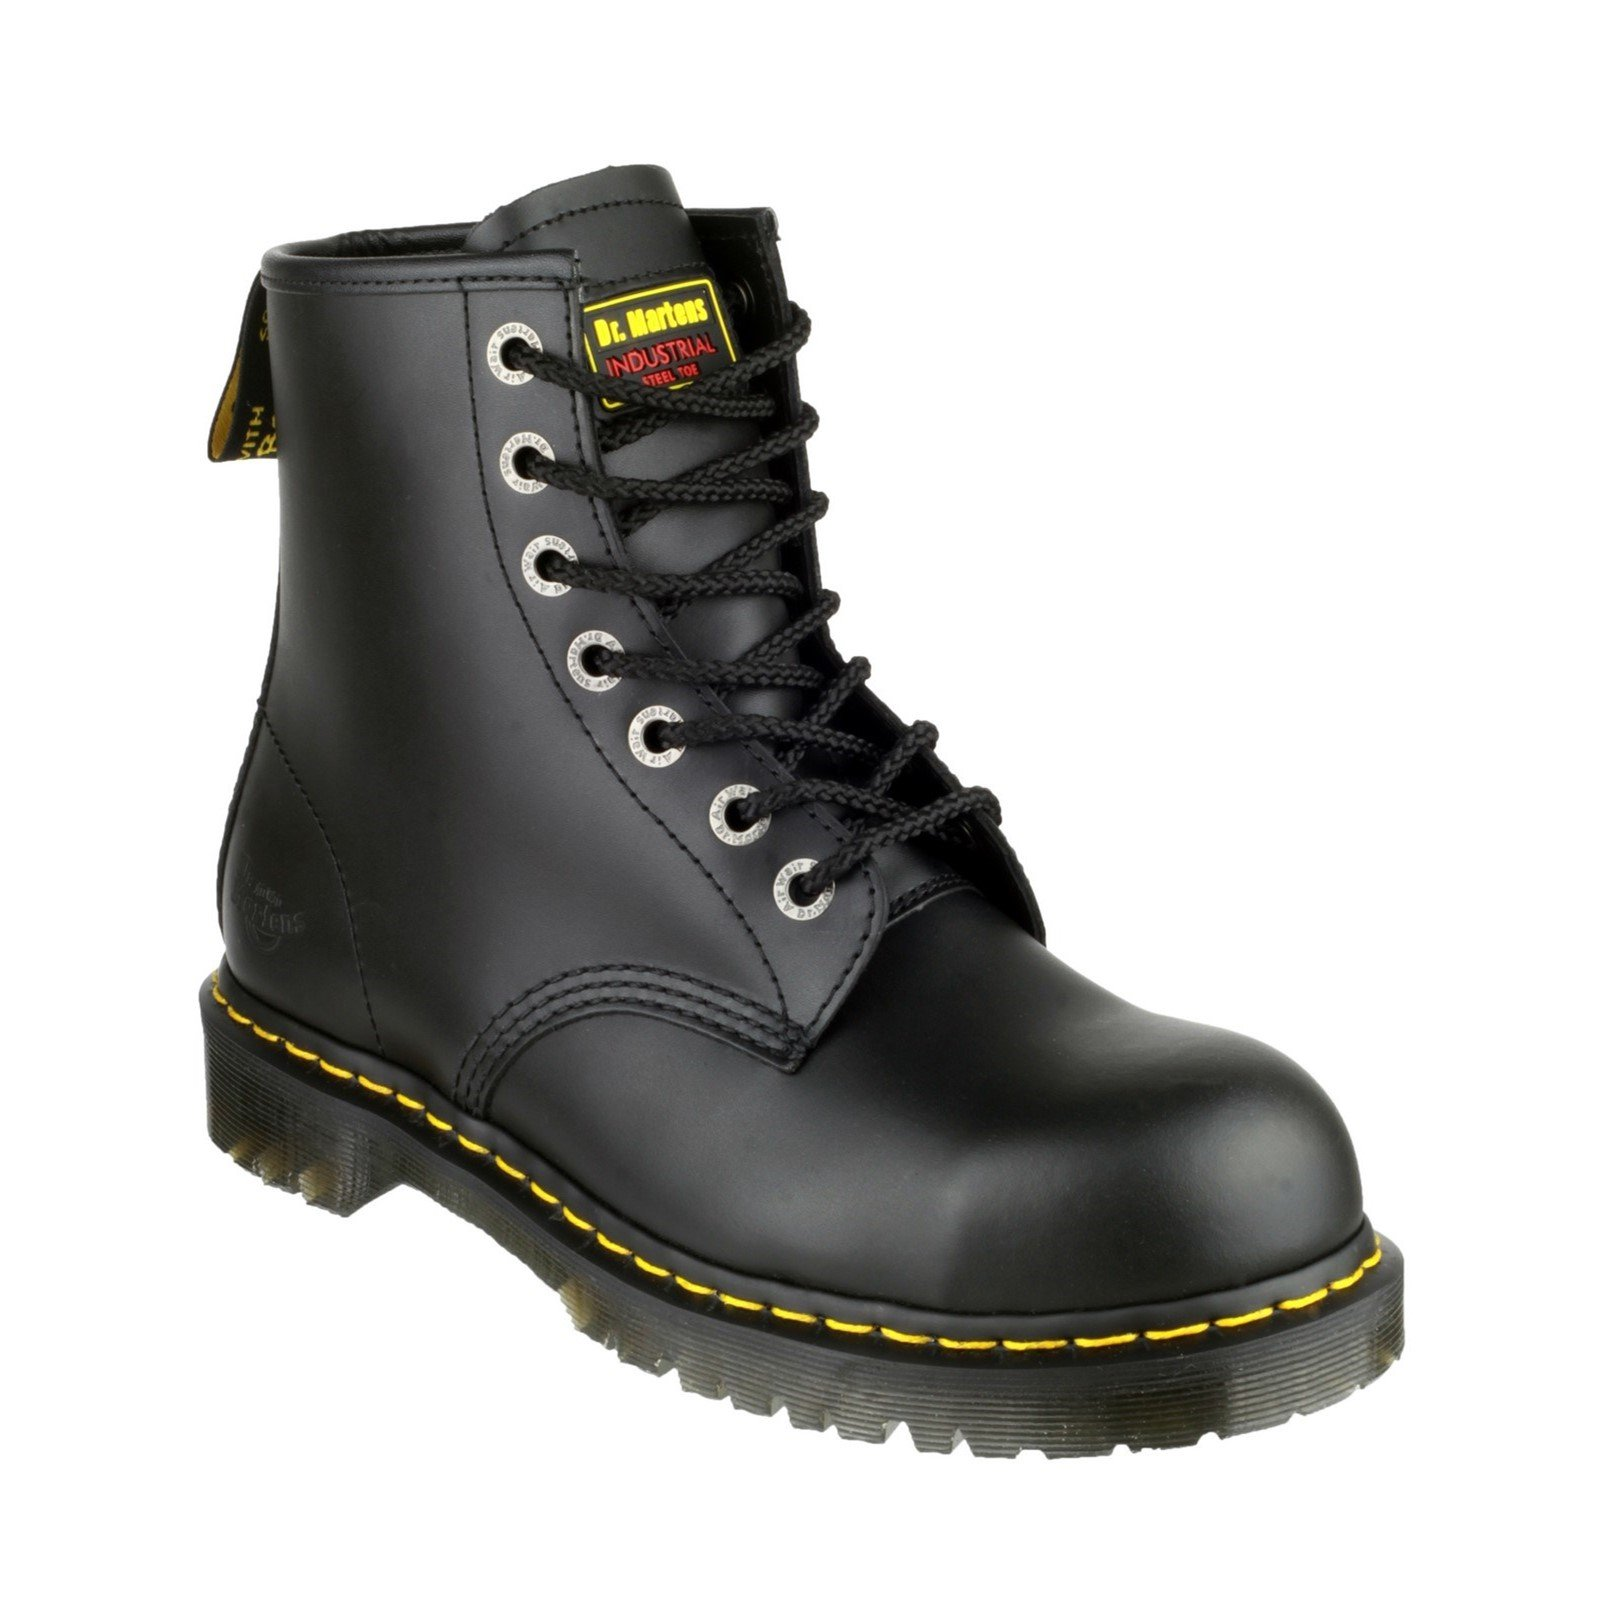 Dr Martens Unisex Icon Lace up Safety Boot Black 19498 - Black 13